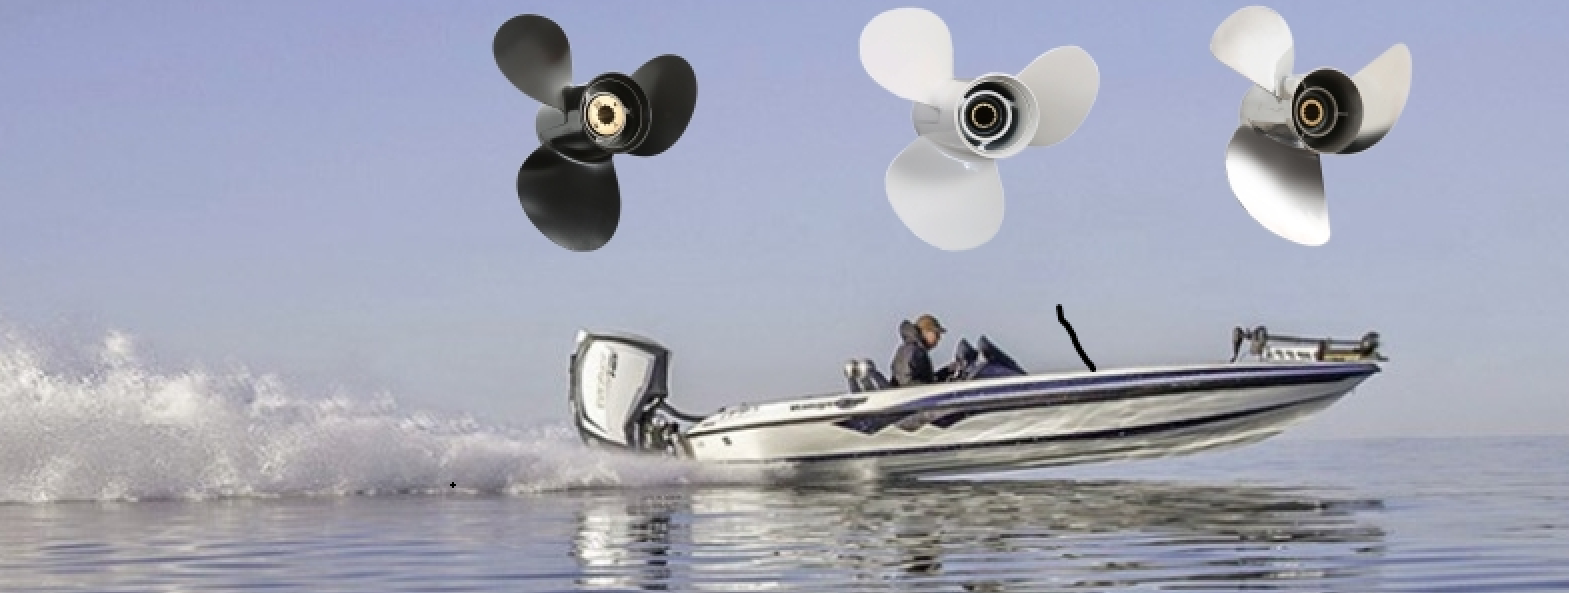 Yhx Stainless Steel Marine Boat Outboard Propeller For Yamaha Engine  9 9-20hp - Buy Boat Propeller,Steel Propeller,Marine Propeller Product on